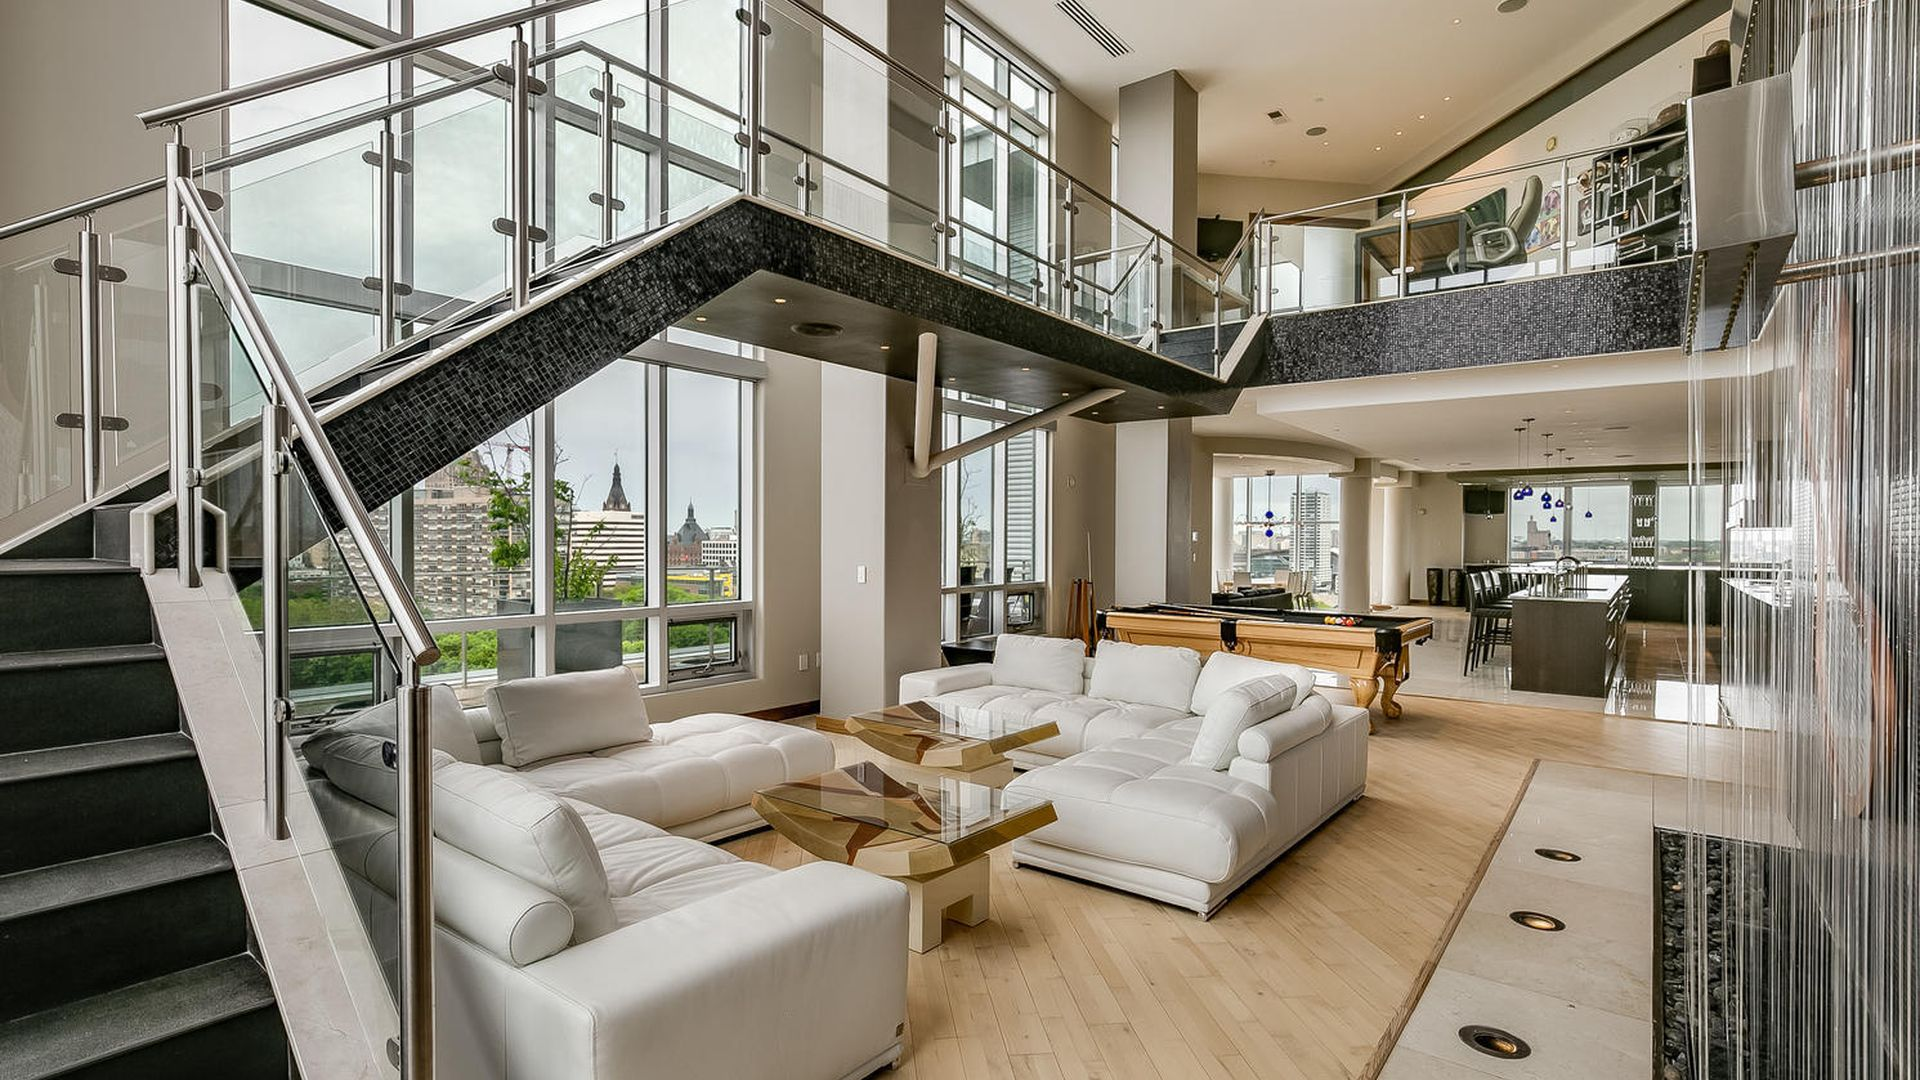 Reason In Selecting A Luxury Builder To Build Your Dream House